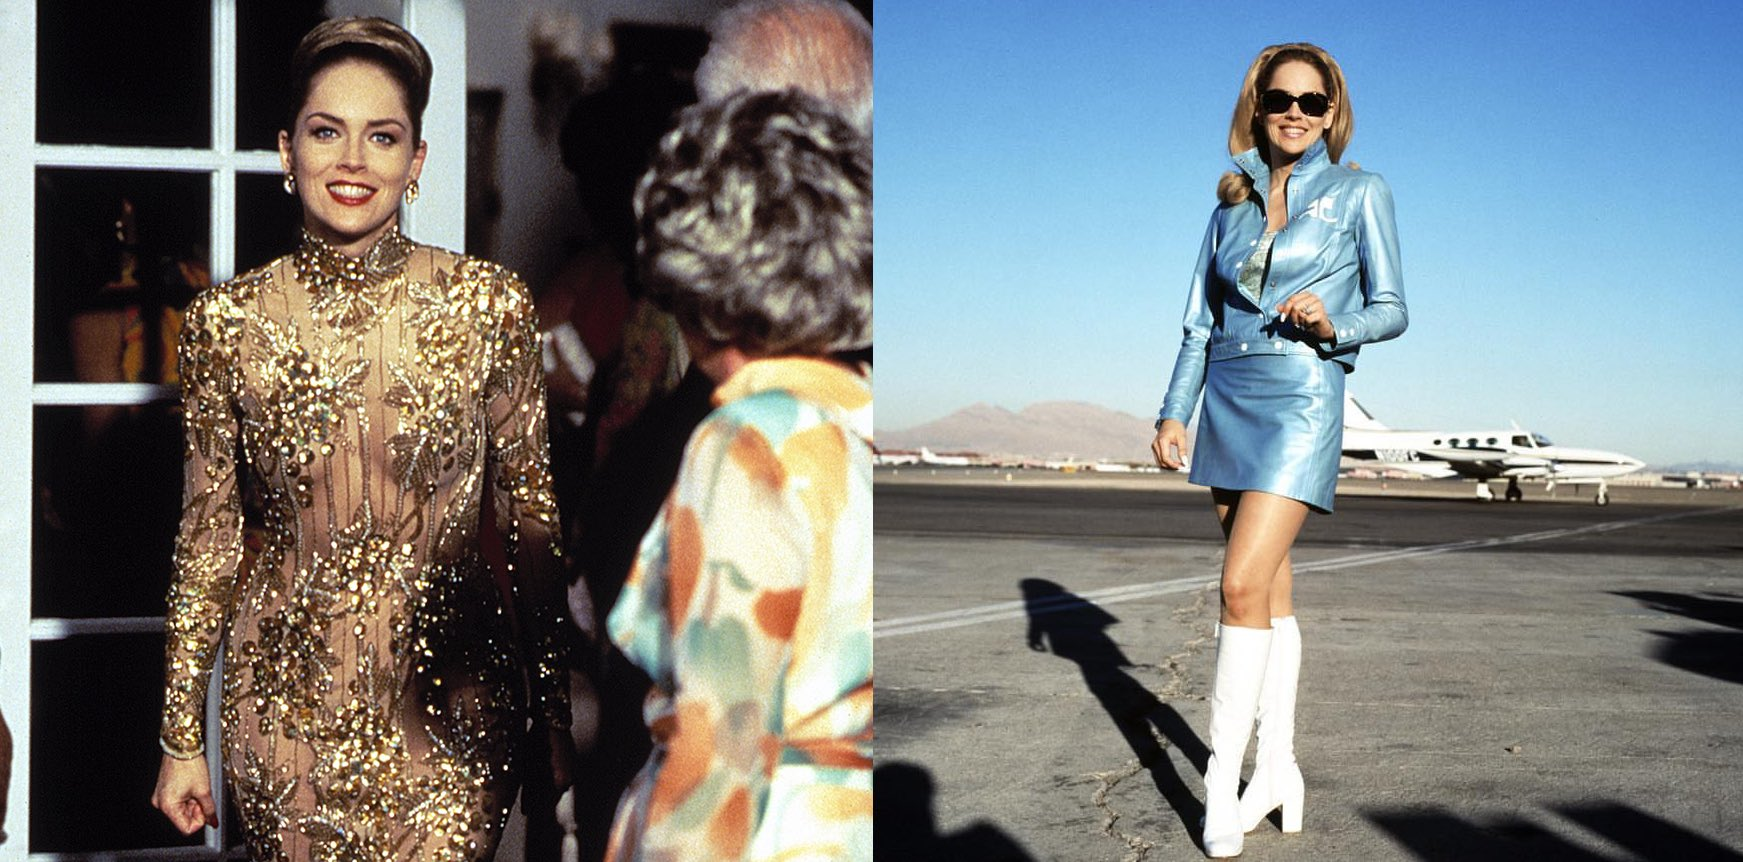 Outfits from the film Casino